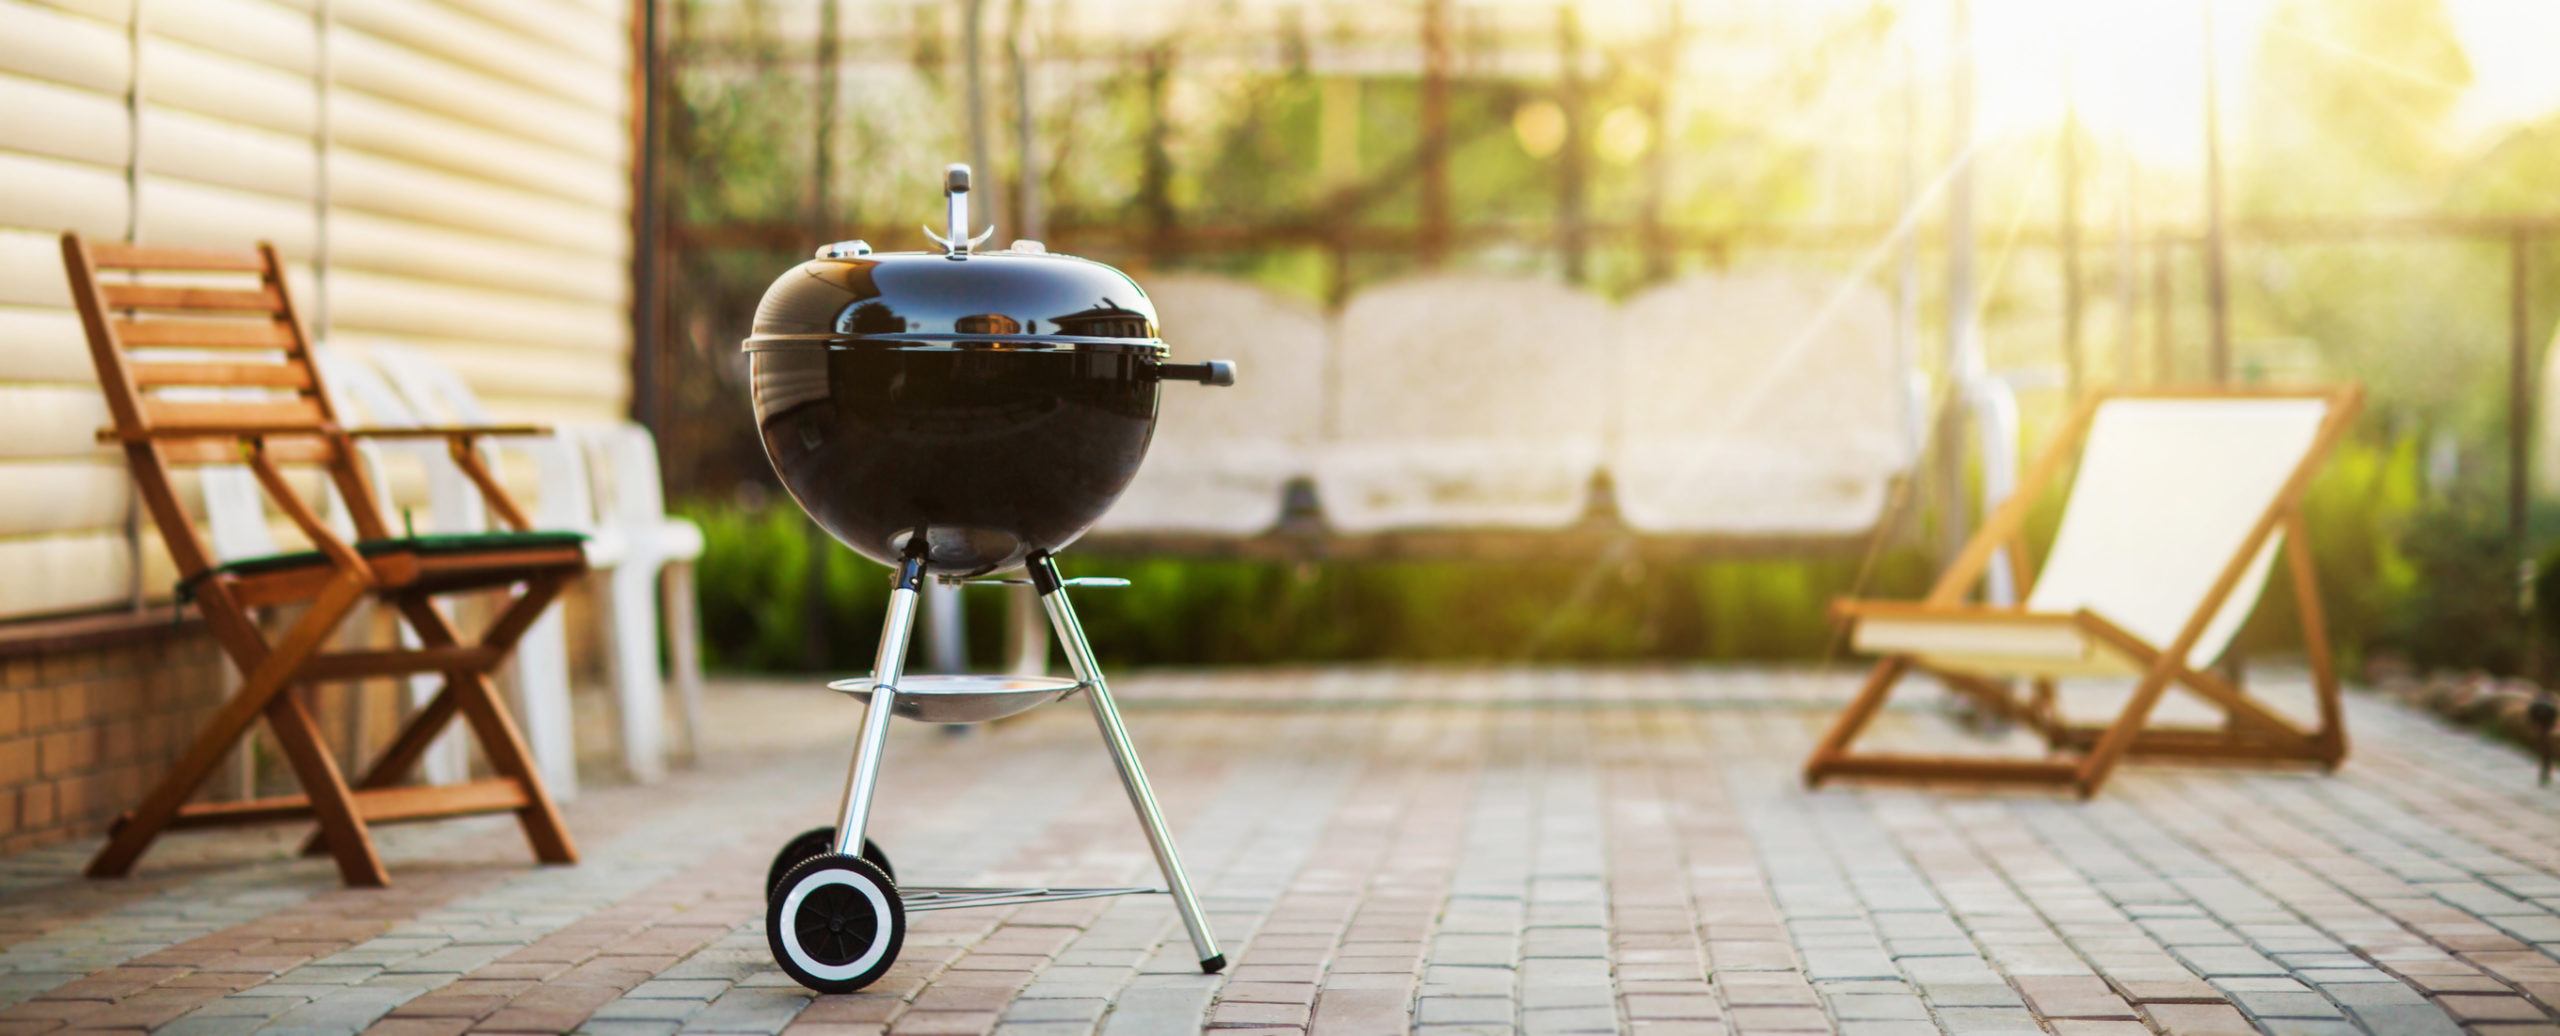 The Best Clearance Deals On Grills Right Now Clark Deals,Chinese Gender Calendar 2020 Lunar Age